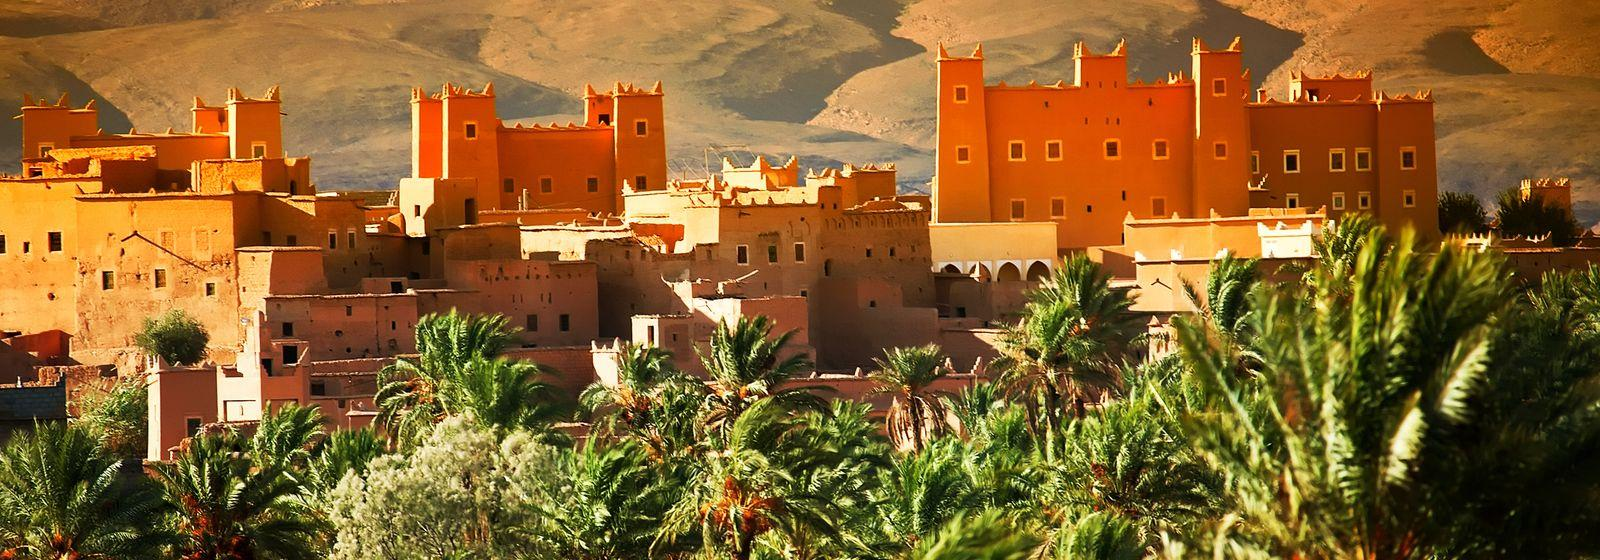 Kasbah and Old Building